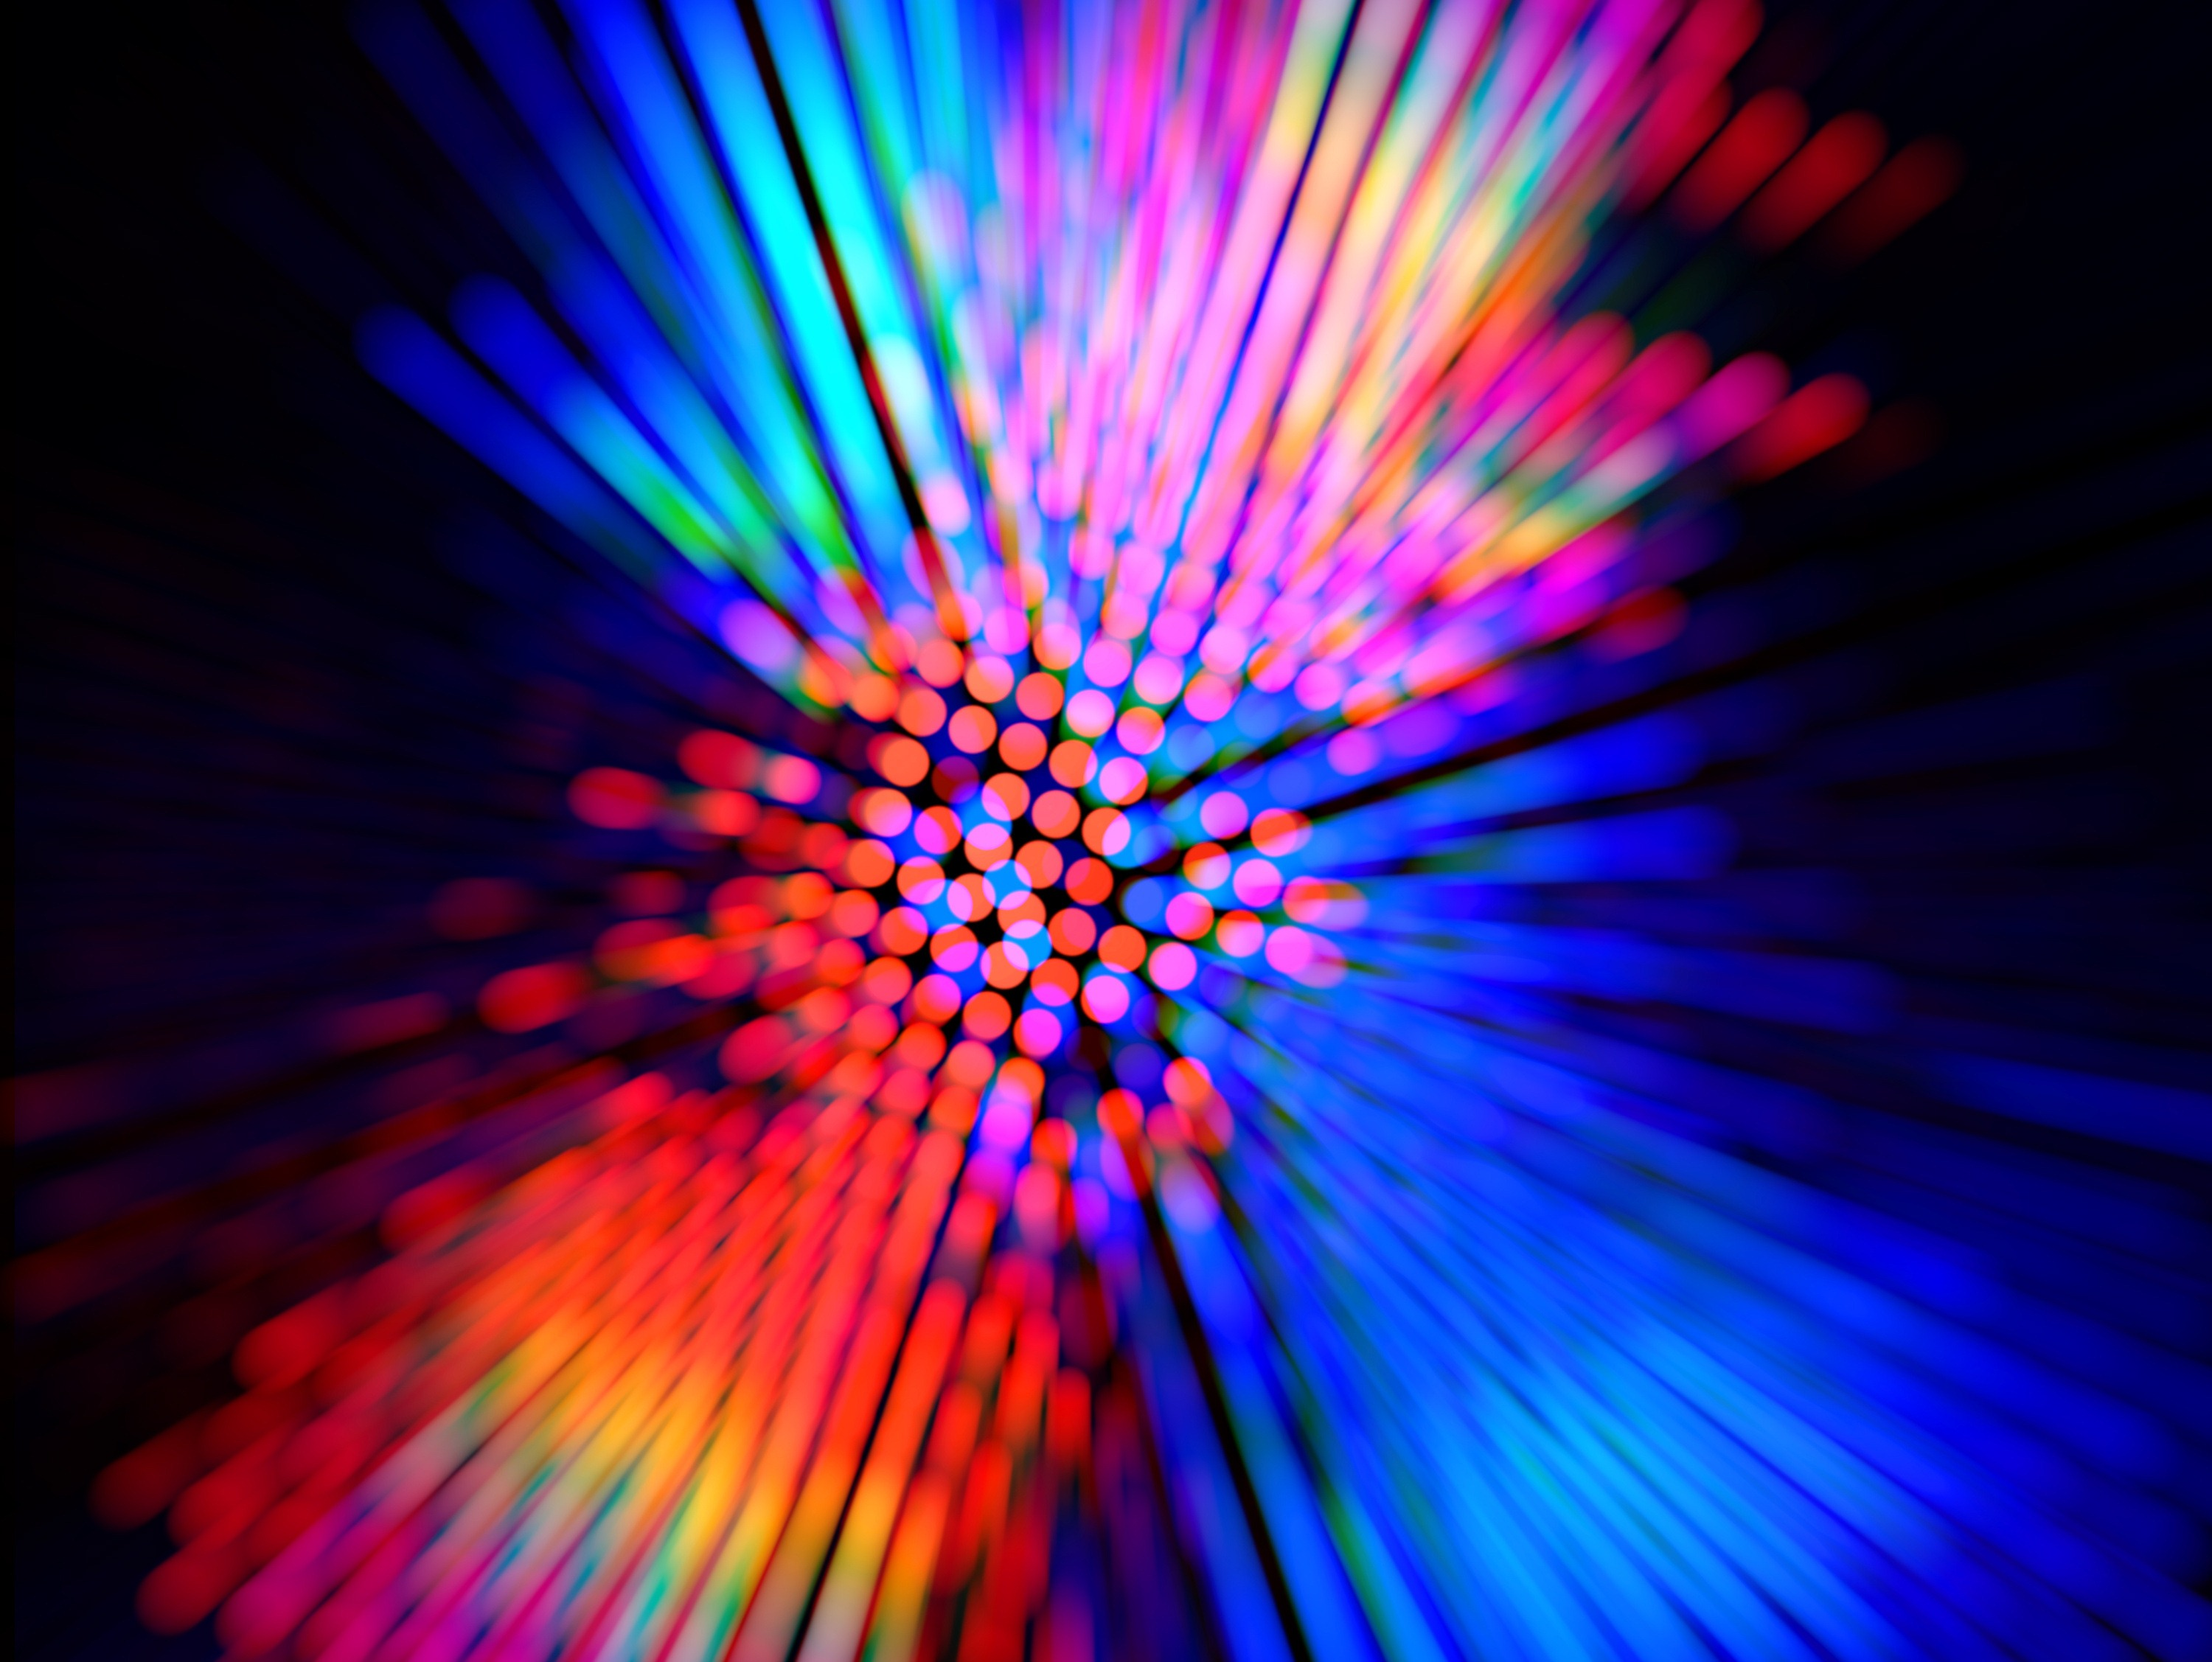 Here Is A Graphic Set Of Abstract Colorful Photos, Includes A Eps File Wallpaper